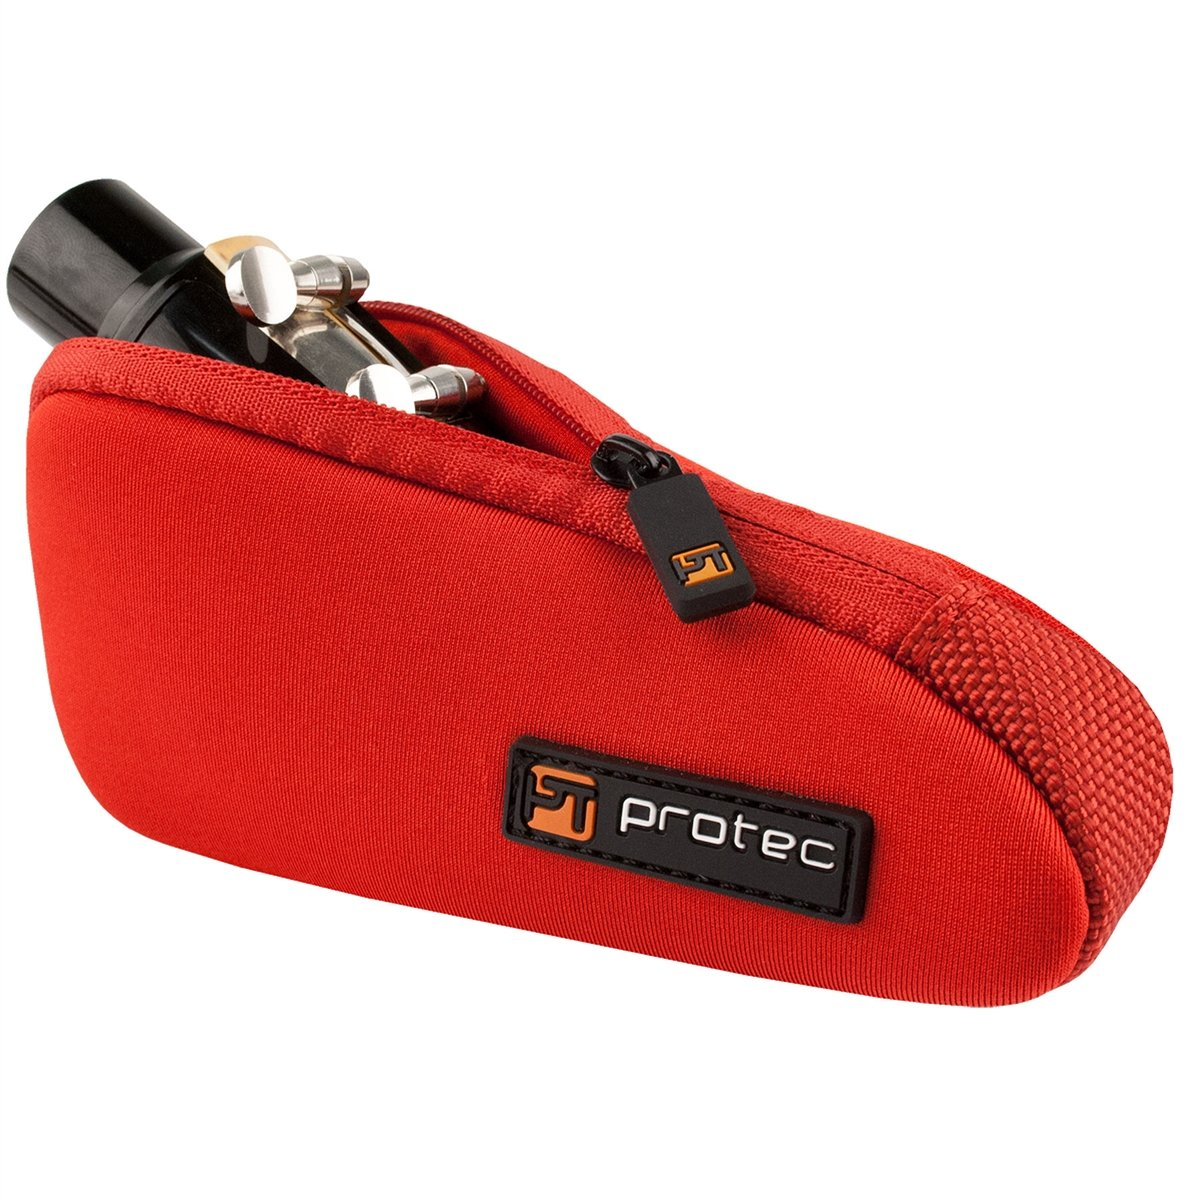 Protec - Single Neoprene Mouthpiece Pouch (for Tuba/Tenor Saxophone)-Accessories-Protec-Red-Music Elements